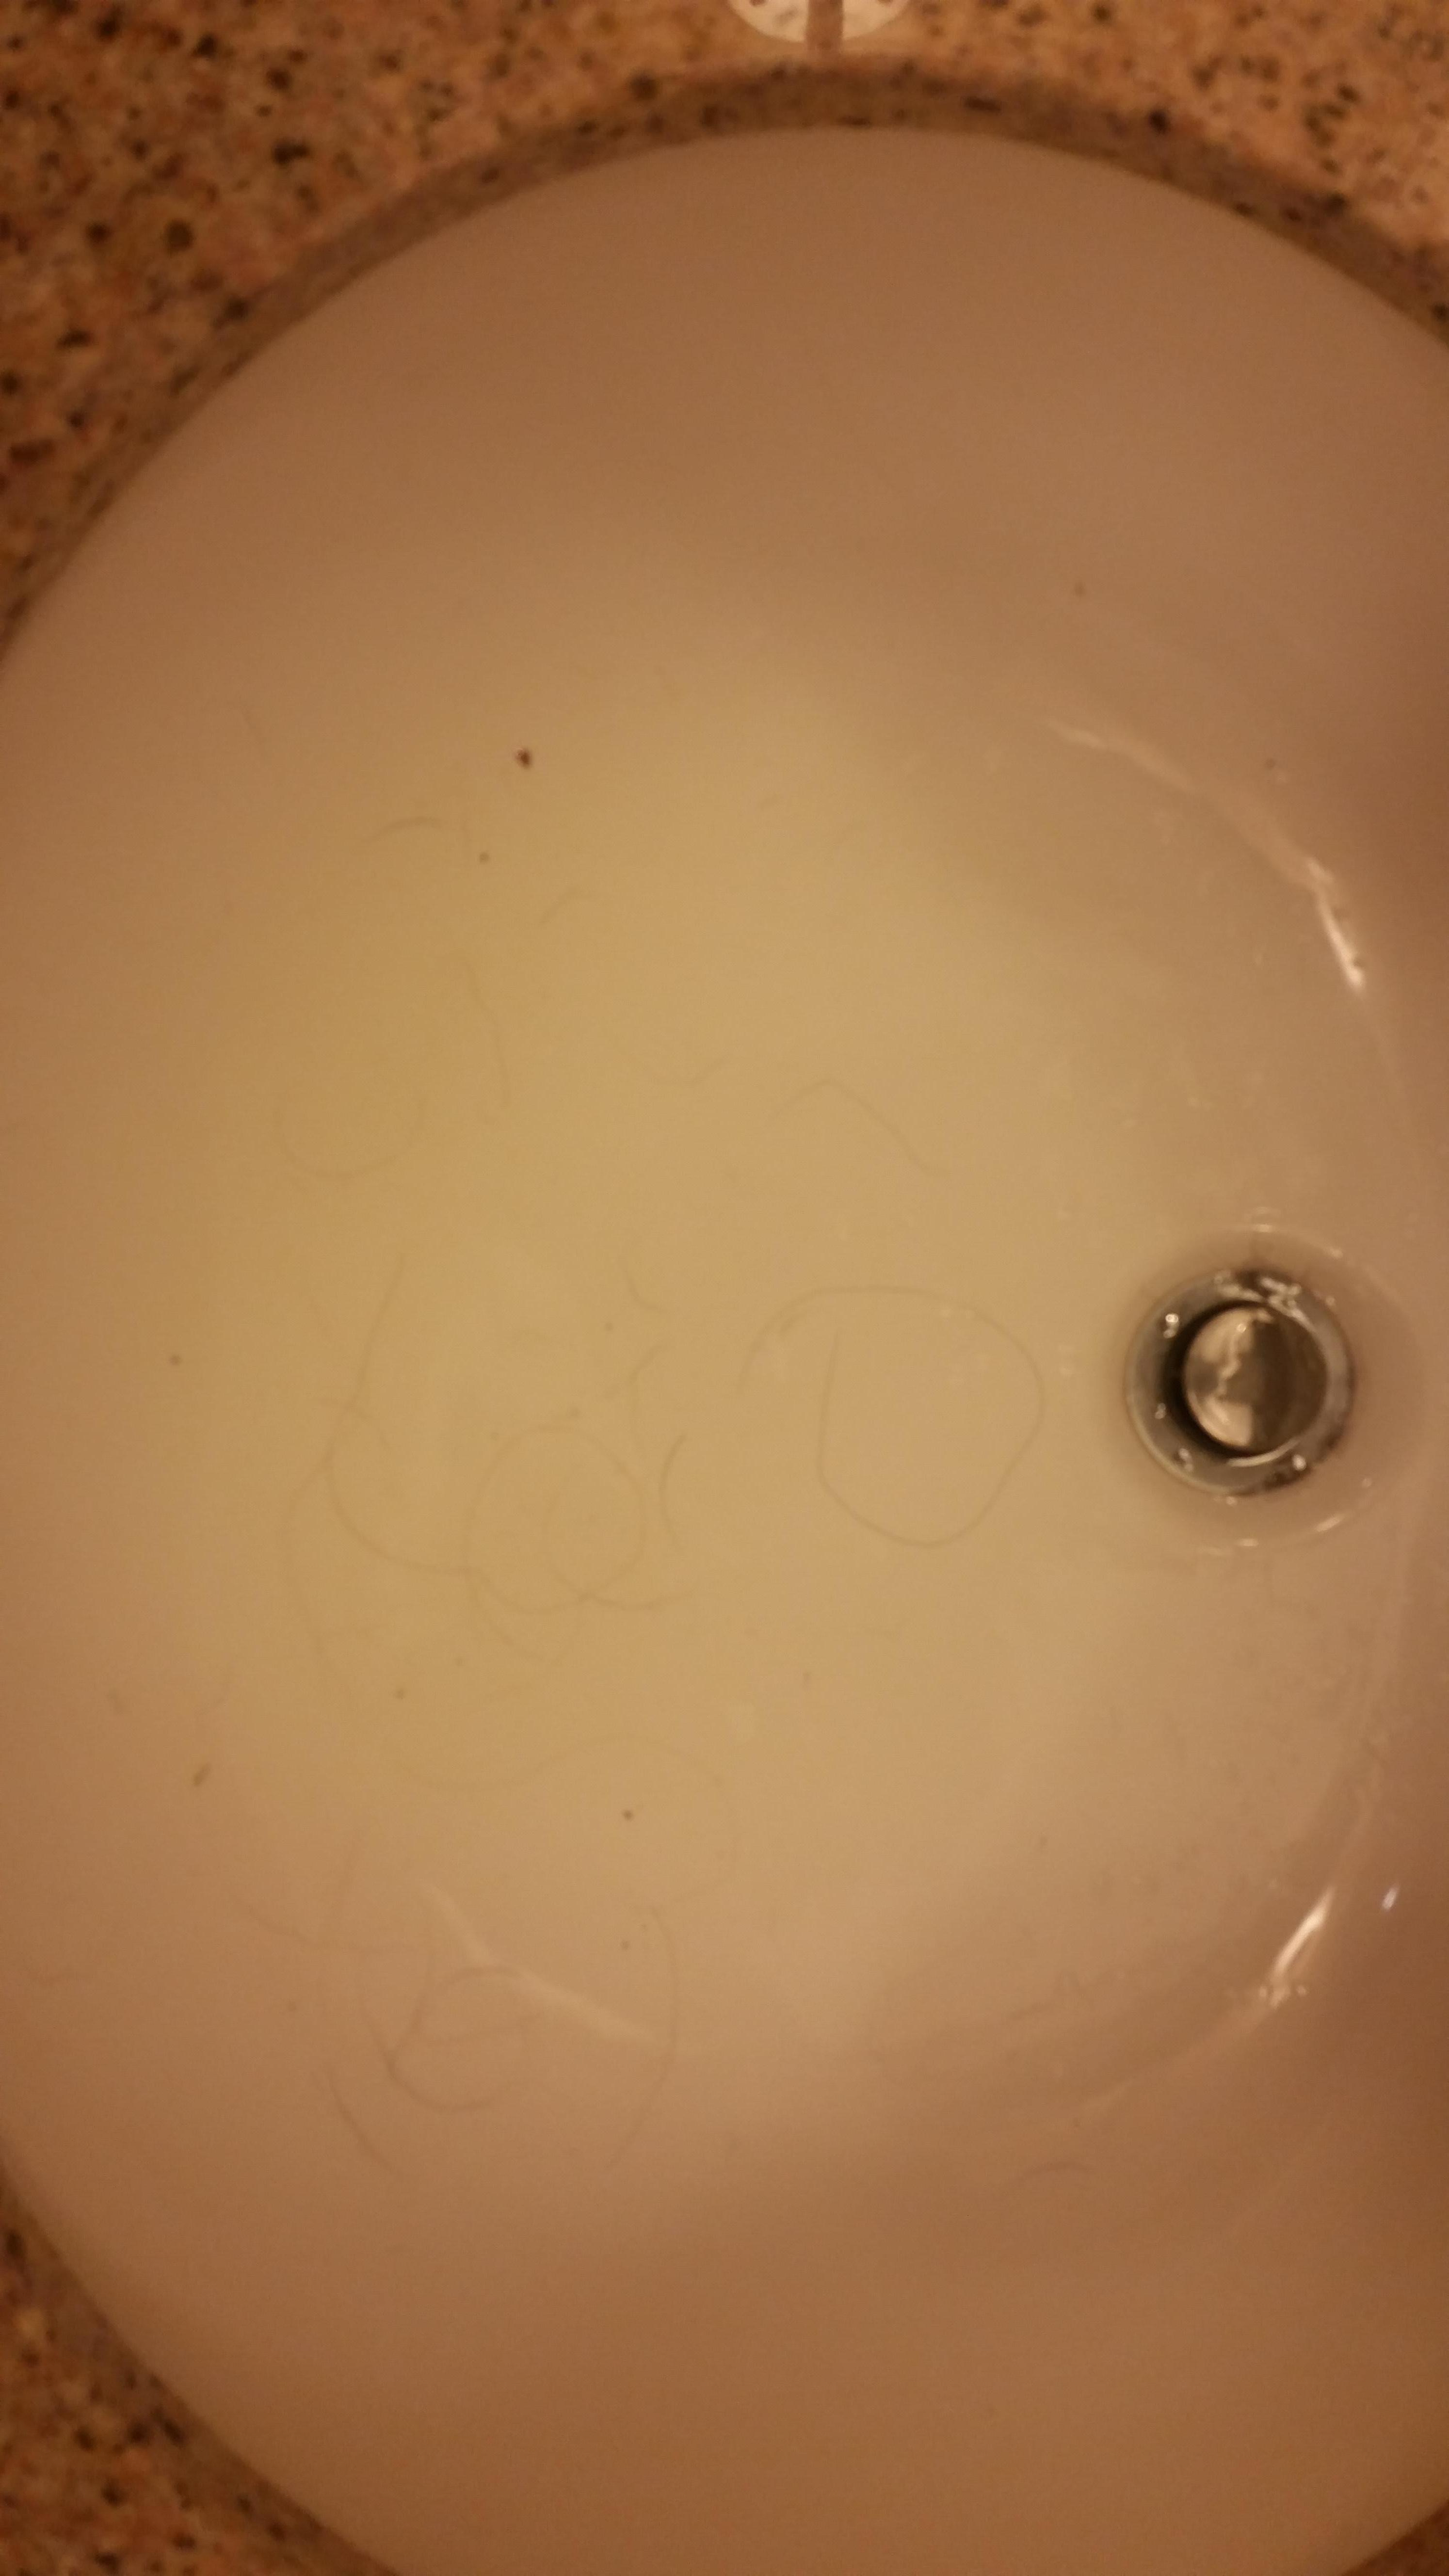 Hair in sink, tough to see here